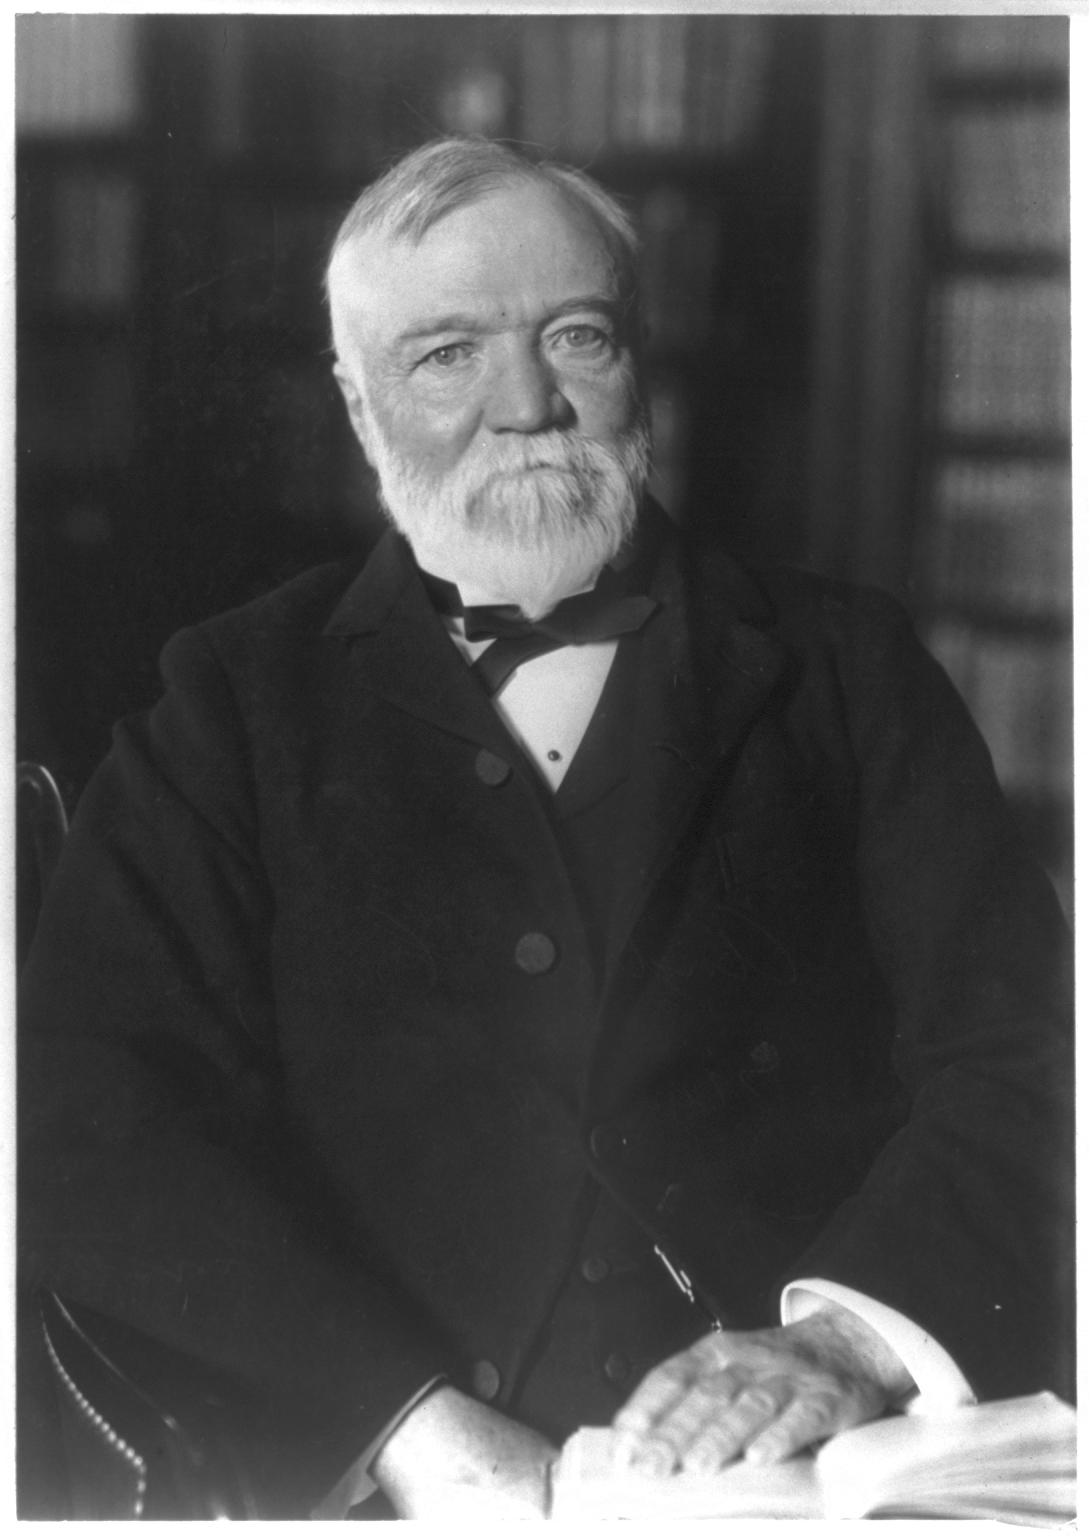 andrew carnigee Andrew carnegie was a scottish american industrialist who led the enormous expansion of the american steel industry in the late 19th century he built a.